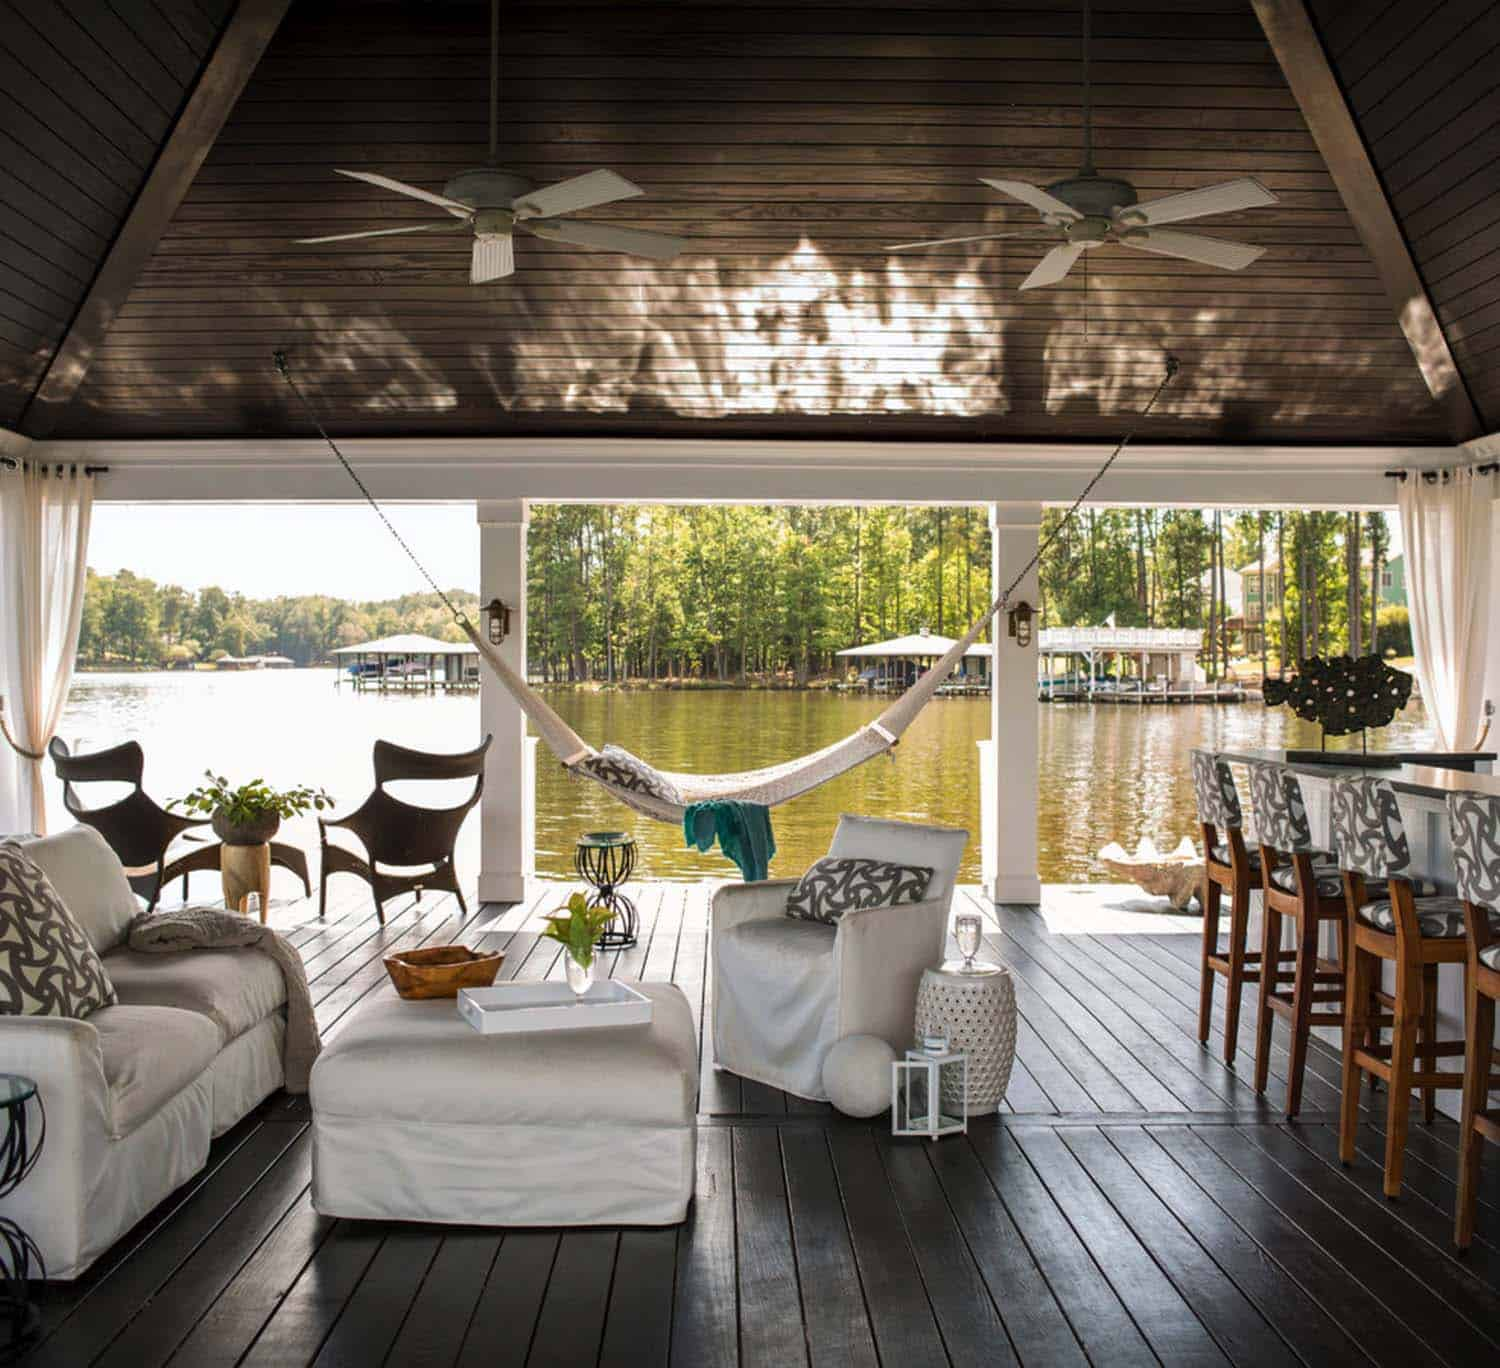 Beach House Decks: 30+ Amazing Beach Style Deck Ideas Promoting Relaxation